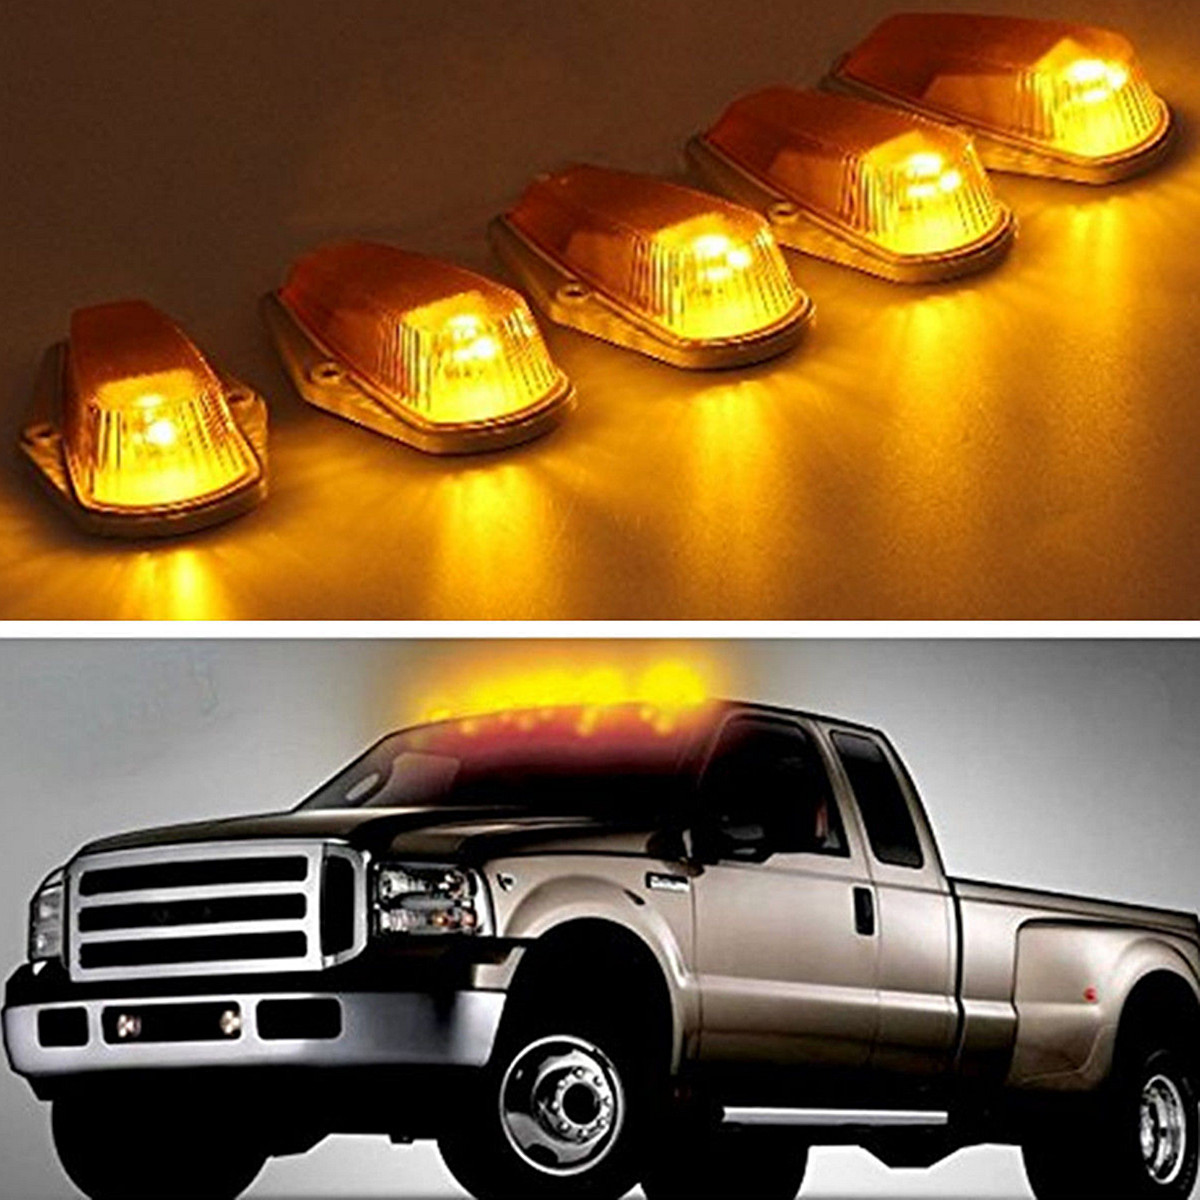 Cab Marker Top Roof Light Cover 5x Transparent for Ford 1980 1997 F150 F250 F350 No lights ABS+PC UV Resistant Waterproof 12V